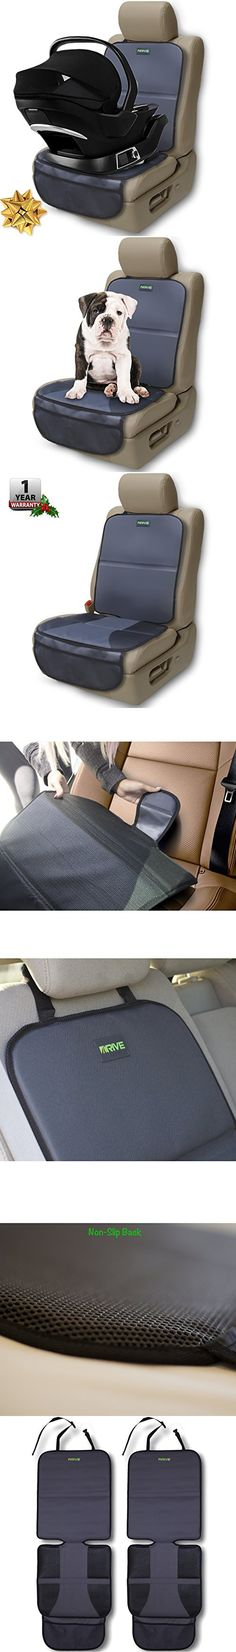 Car Seat Protector (2-Pack) by Drive Auto Products - Best Protection for Child & Baby Cars Seats, Dog Mat - Ultimate Cover Pad Protects Automotive Vehicle Leather or Cloth Upholstery